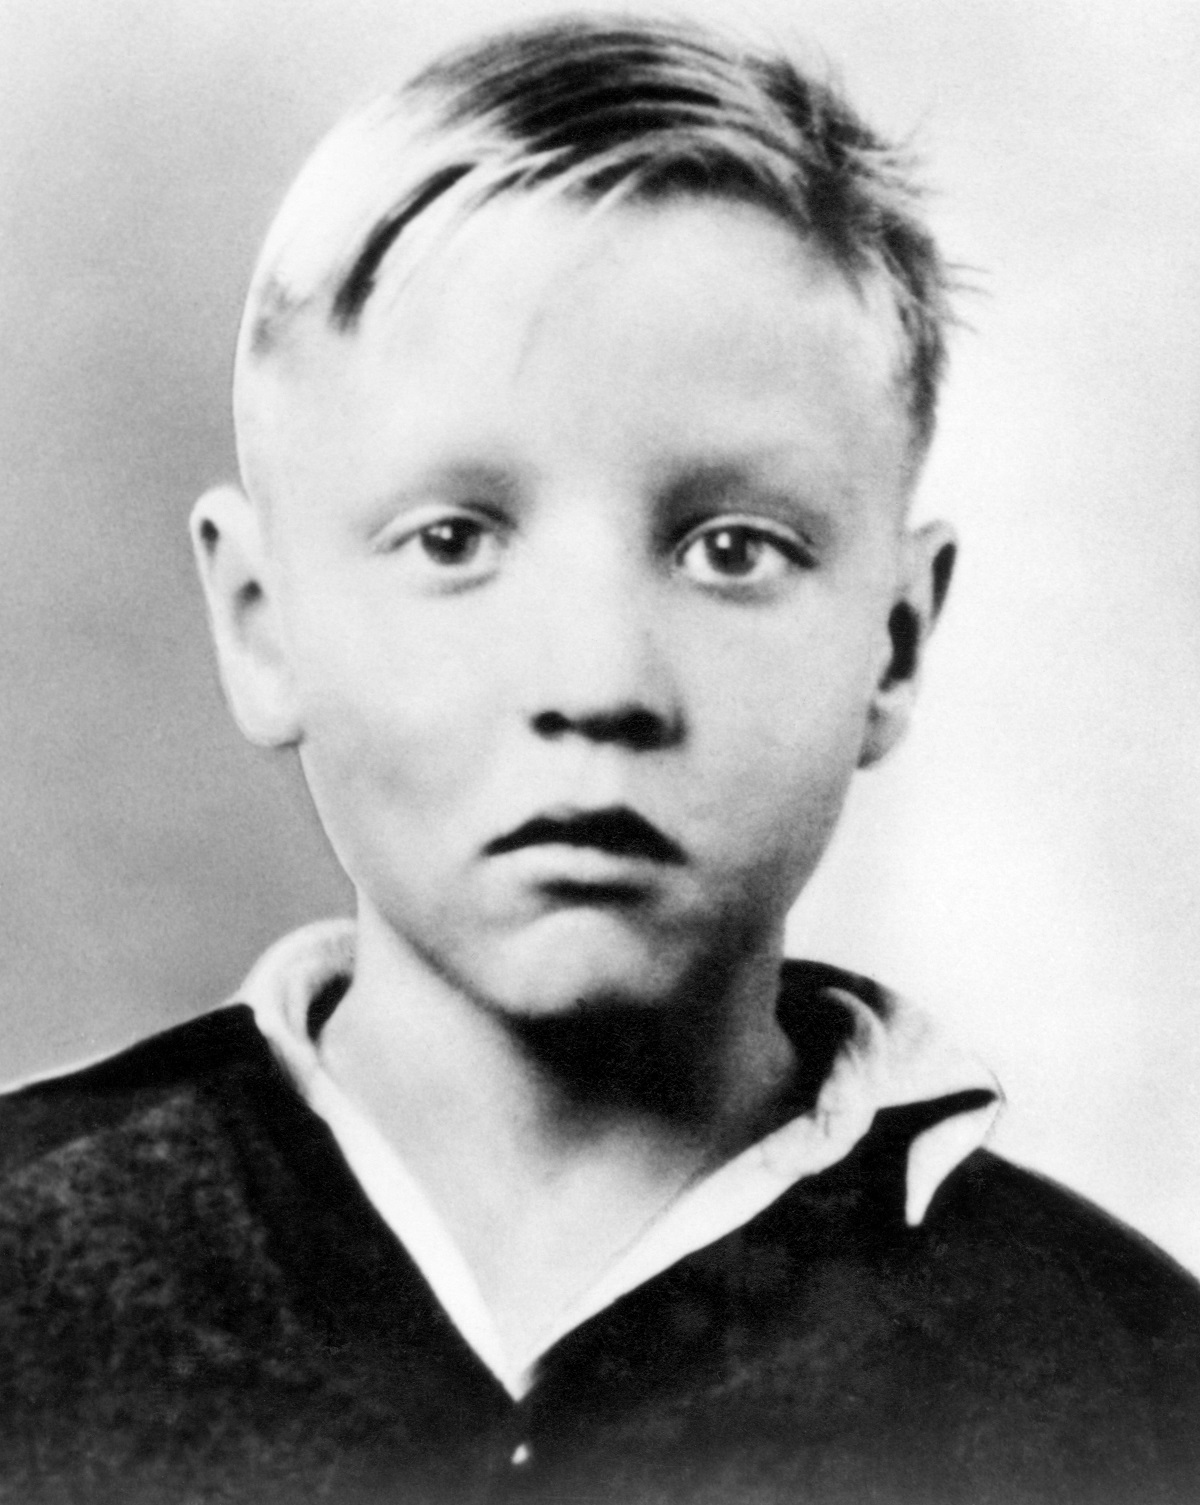 A headshot of a blonde Elvis Presley as a child in the early 1940s